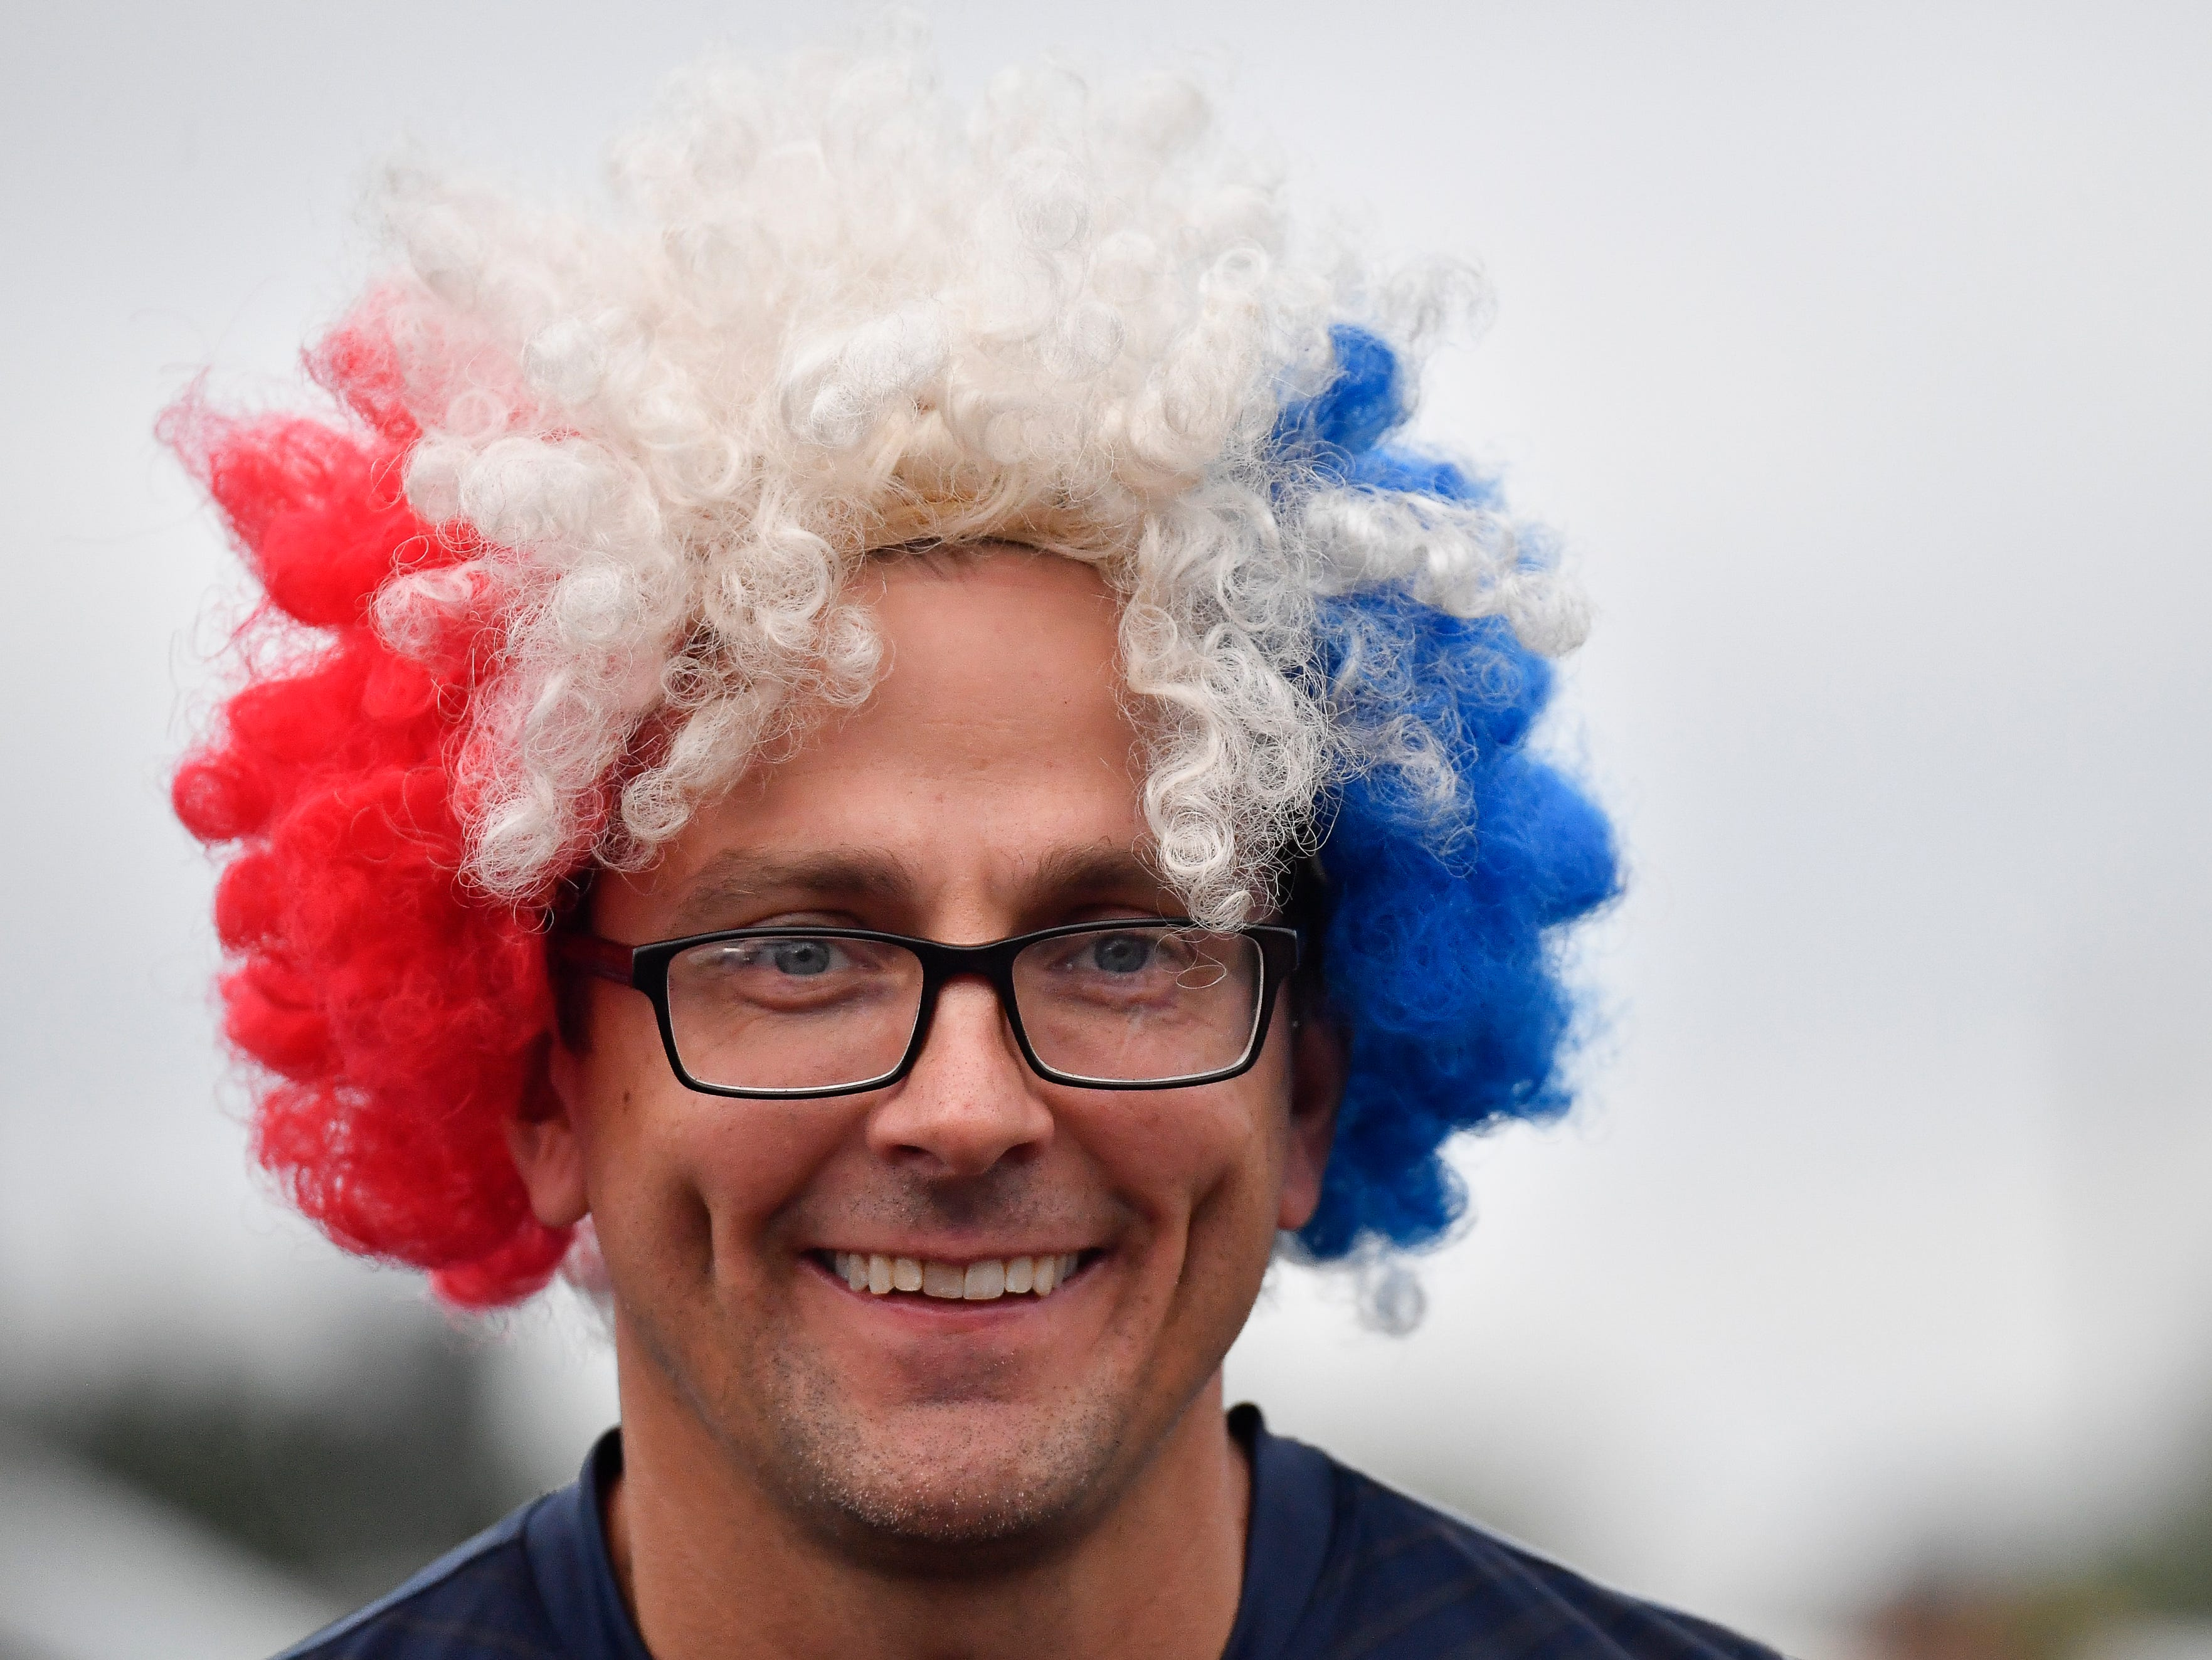 USA Soccer fan Vinnie Magnarini wears his Red White and Blue wig before the USA vs. Mexico soccer match at Nissan Stadium Tuesday, Sept. 11, 2018, in Nashville, Tenn.